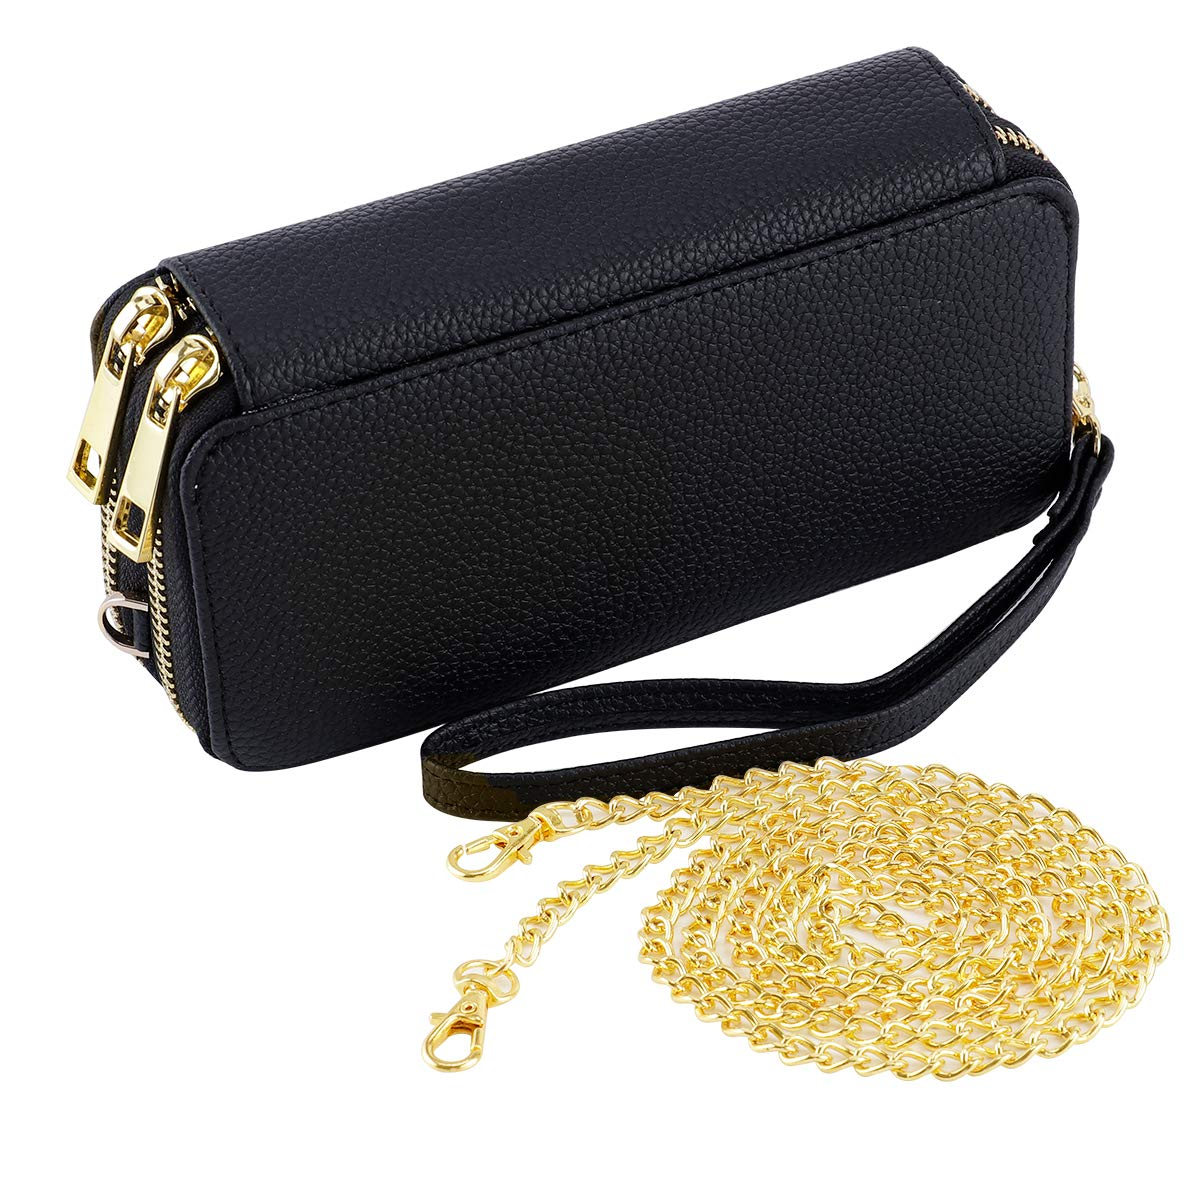 HAWEE Wristlet Clutch Wallet for Women Shoulder Bag with Chain Strap Cell Phone Purse, Black